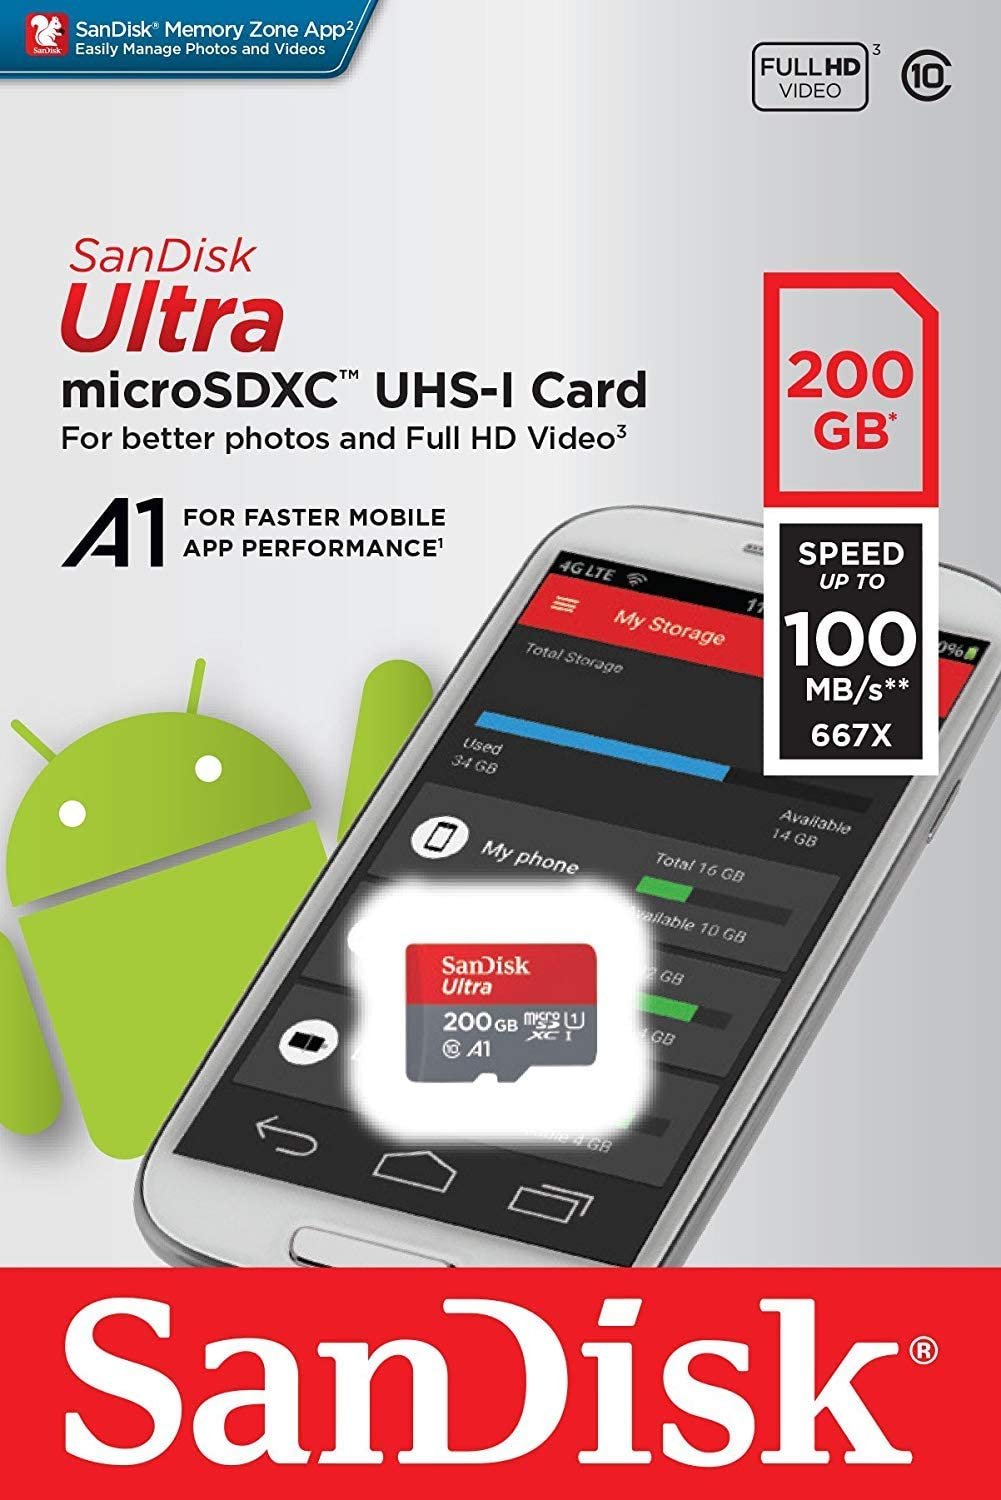 SanDisk Ultra 200GB MicroSDXC Verified for Plum Might Plus by SanFlash 100MBs A1 U1 C10 Works with SanDisk